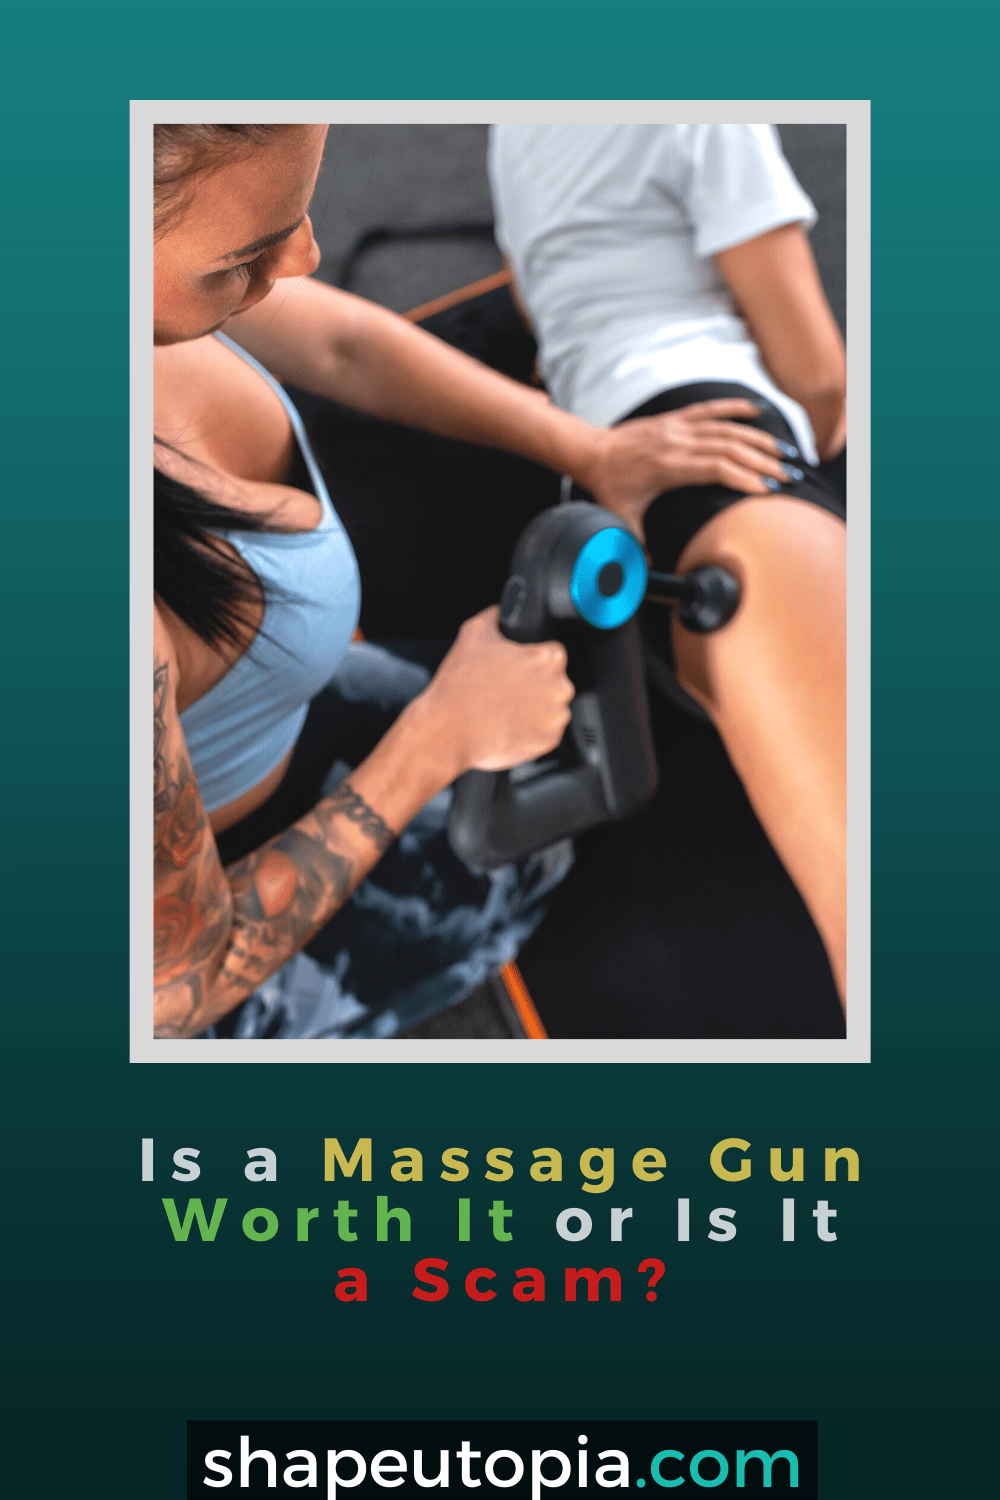 Is a Massage Gun Worth It or is It a Scam